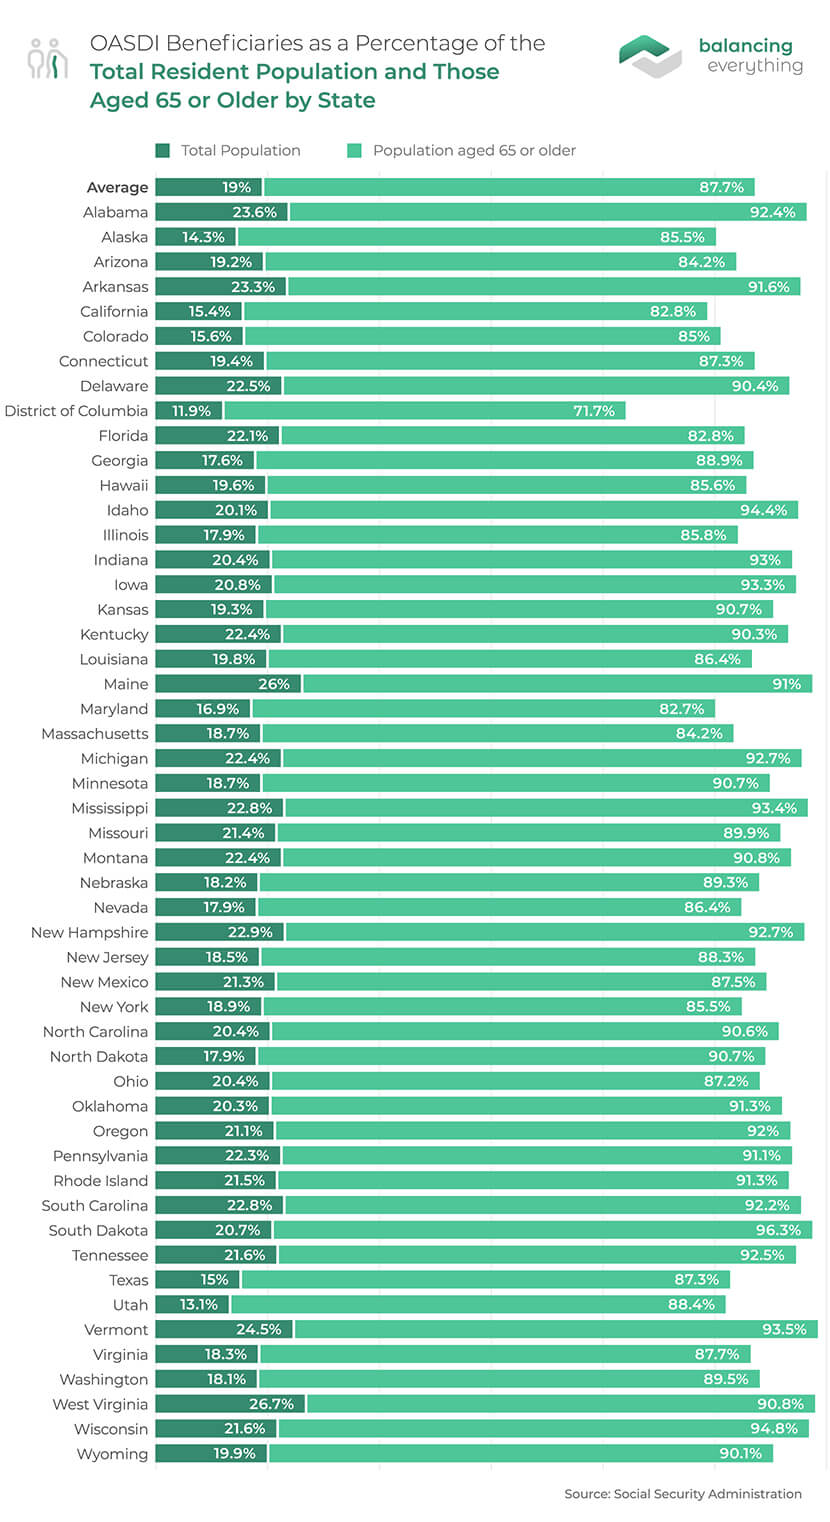 OASDI Beneficiaries as a Percentage of the Total Resident Population and Those Aged 65 or Older by State